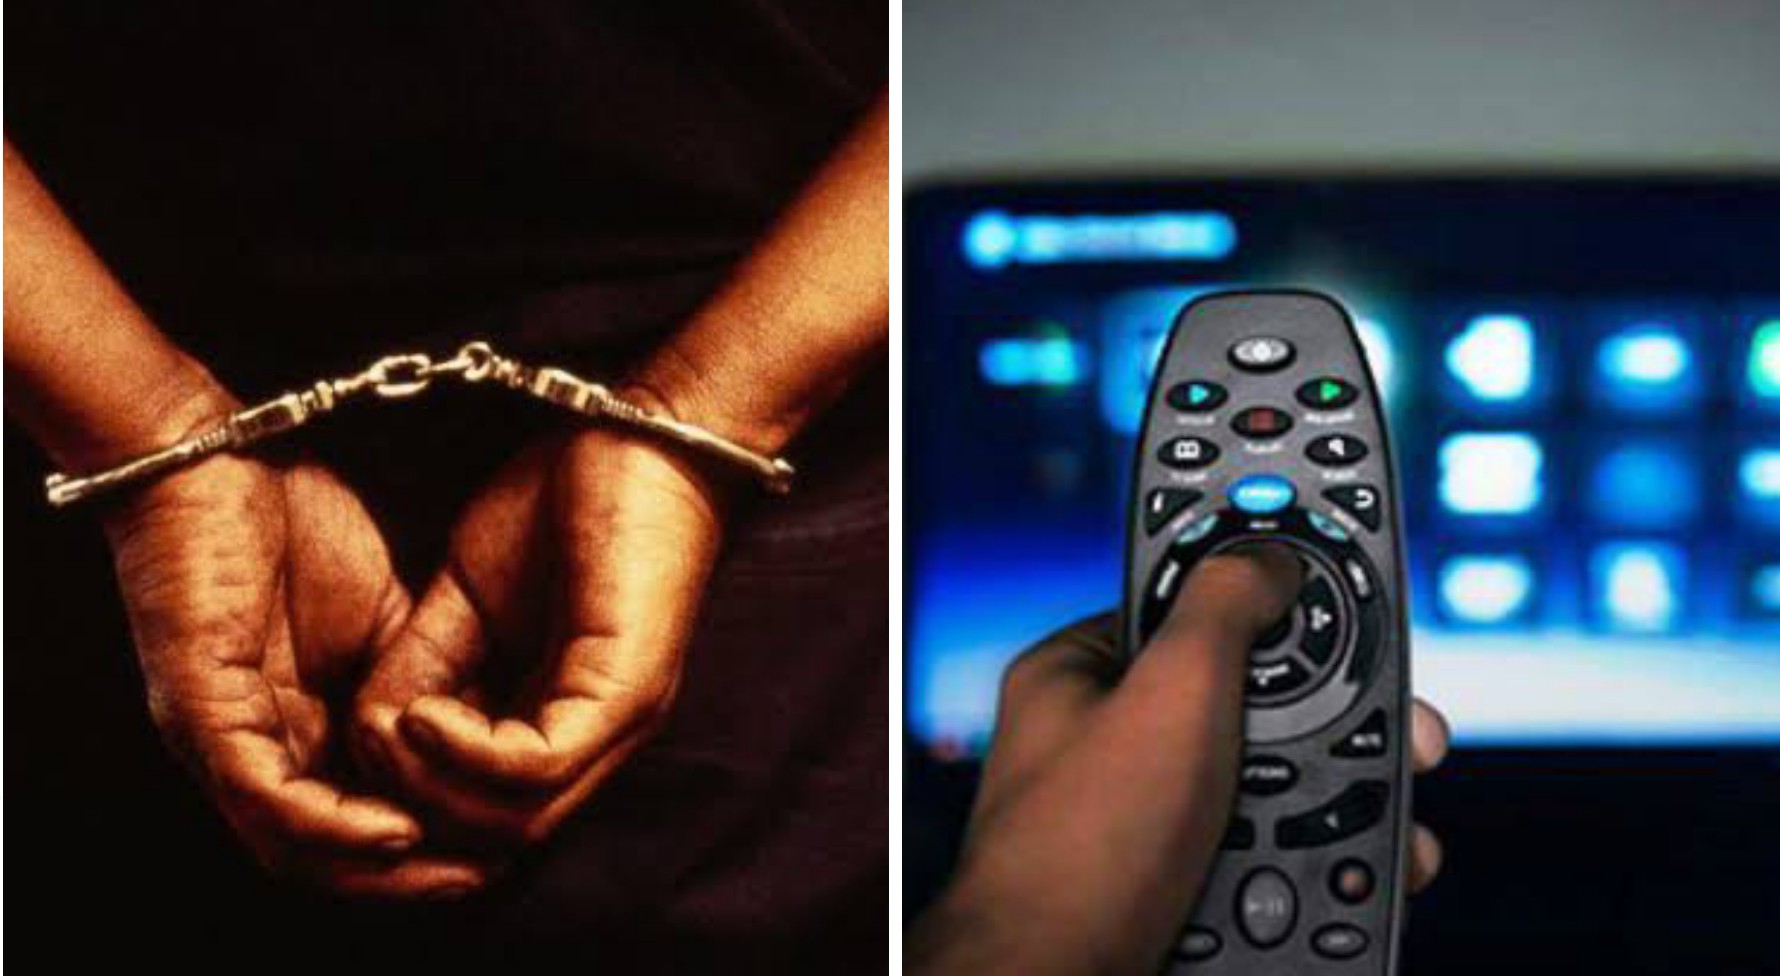 NCC arrest man for allegedly hacking into DSTV system, watching channels free without subscription